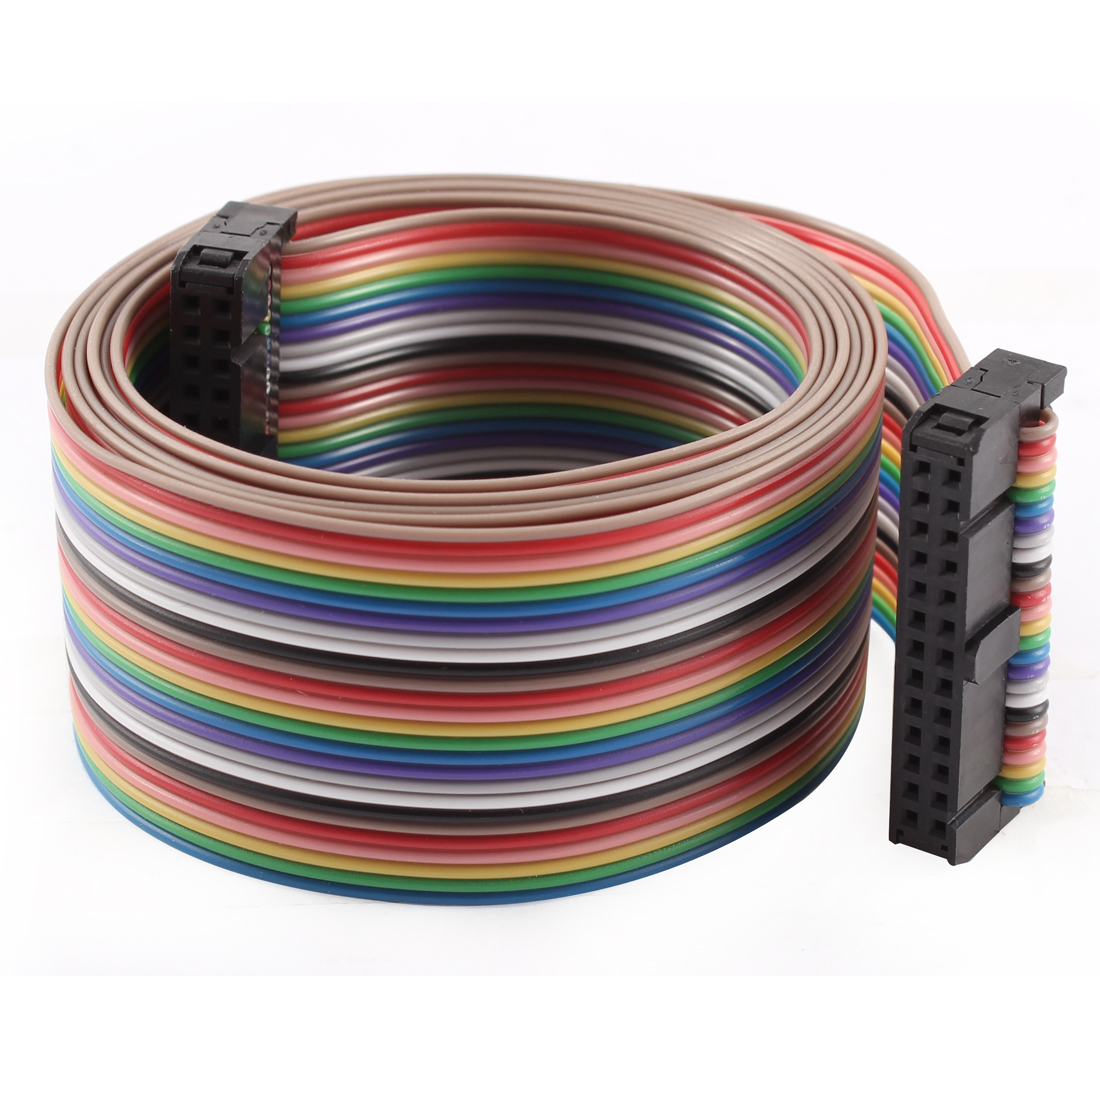 2.54mm Pitch 26 Pin 26 Way F/F Connector IDC Flat Rainbow Ribbon Cable 118cm